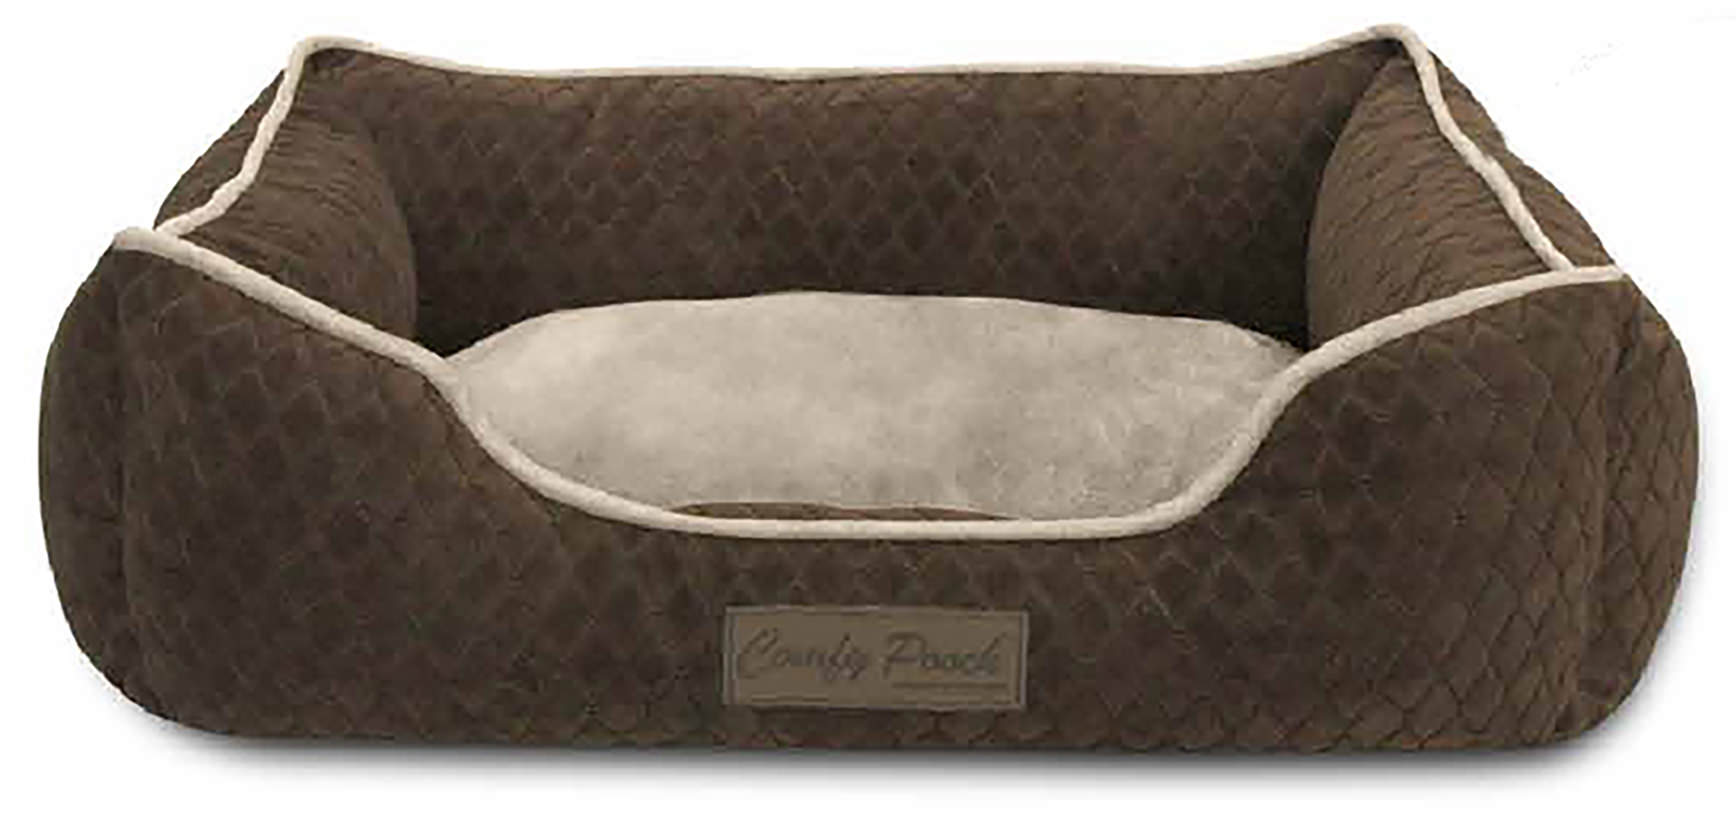 Comfy pooch corduroy couch hd78 500 home dynamixhome dynamix Comfy couch dog bed